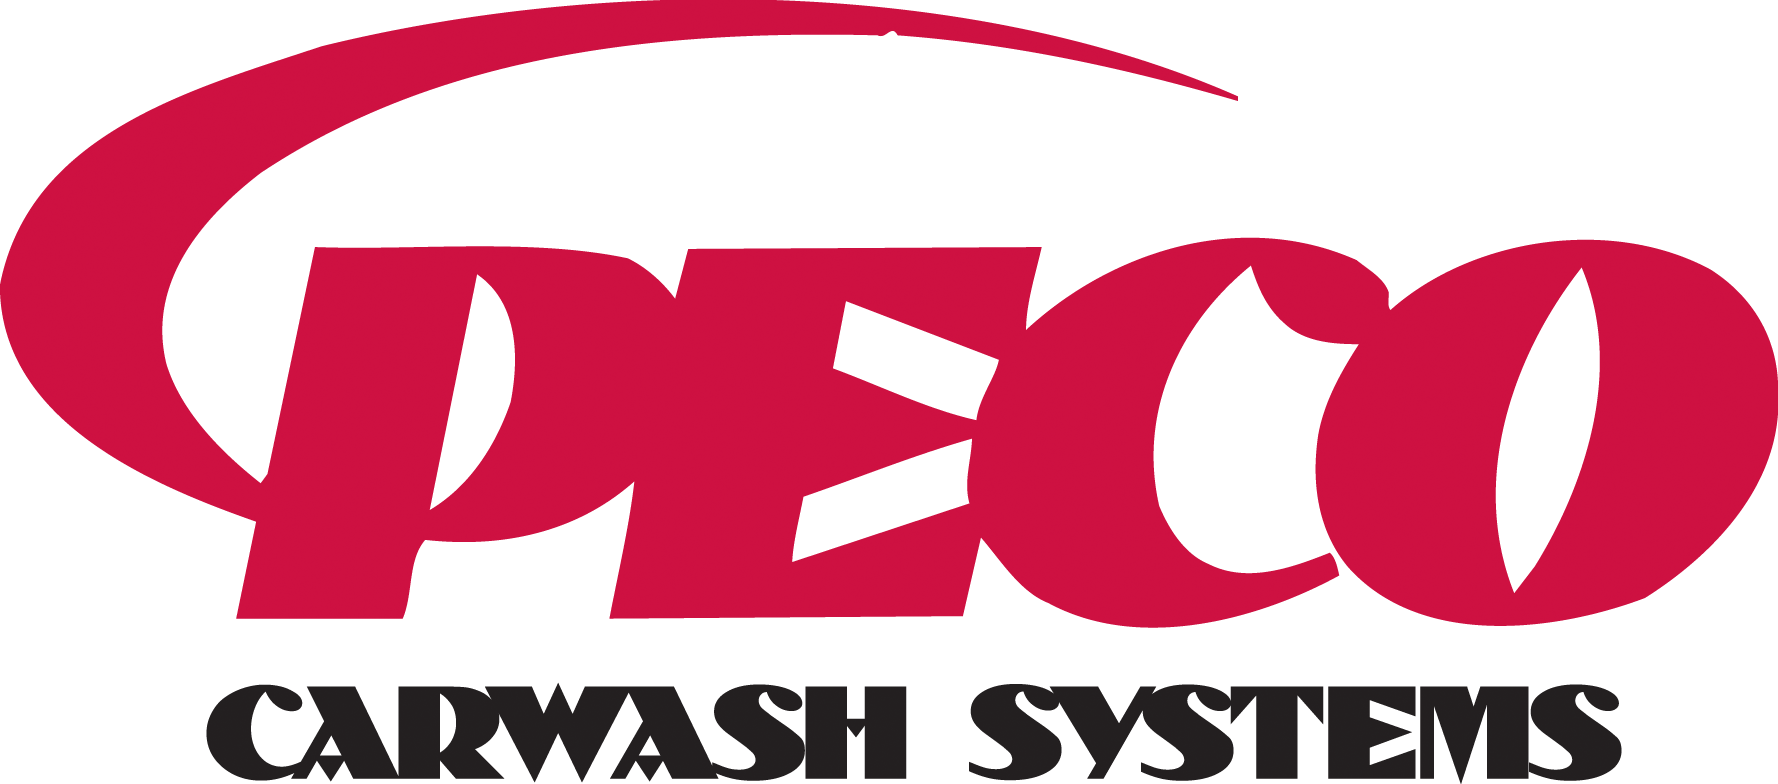 PECO Car Wash Systems